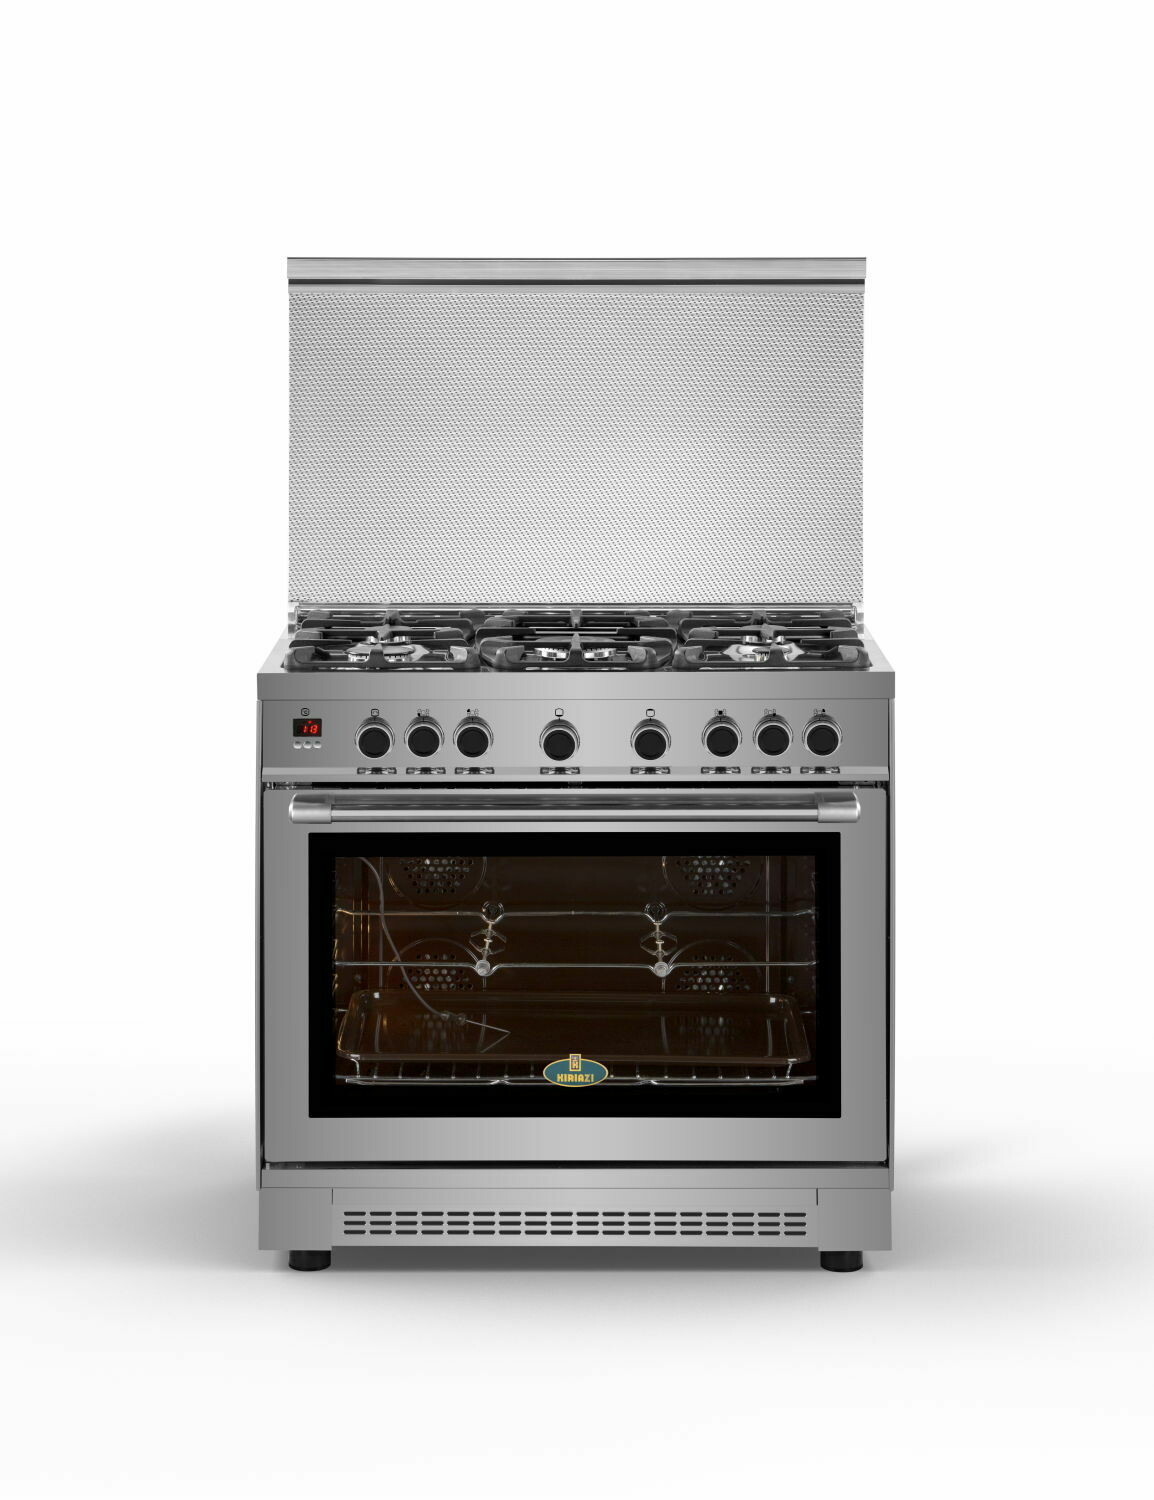 Kiriazi Oven Premiere Smart 5 Burners Stainless Steel 90FC9 - Bomb Gas 90FC9 - فرن كريازى بريميير سمارت